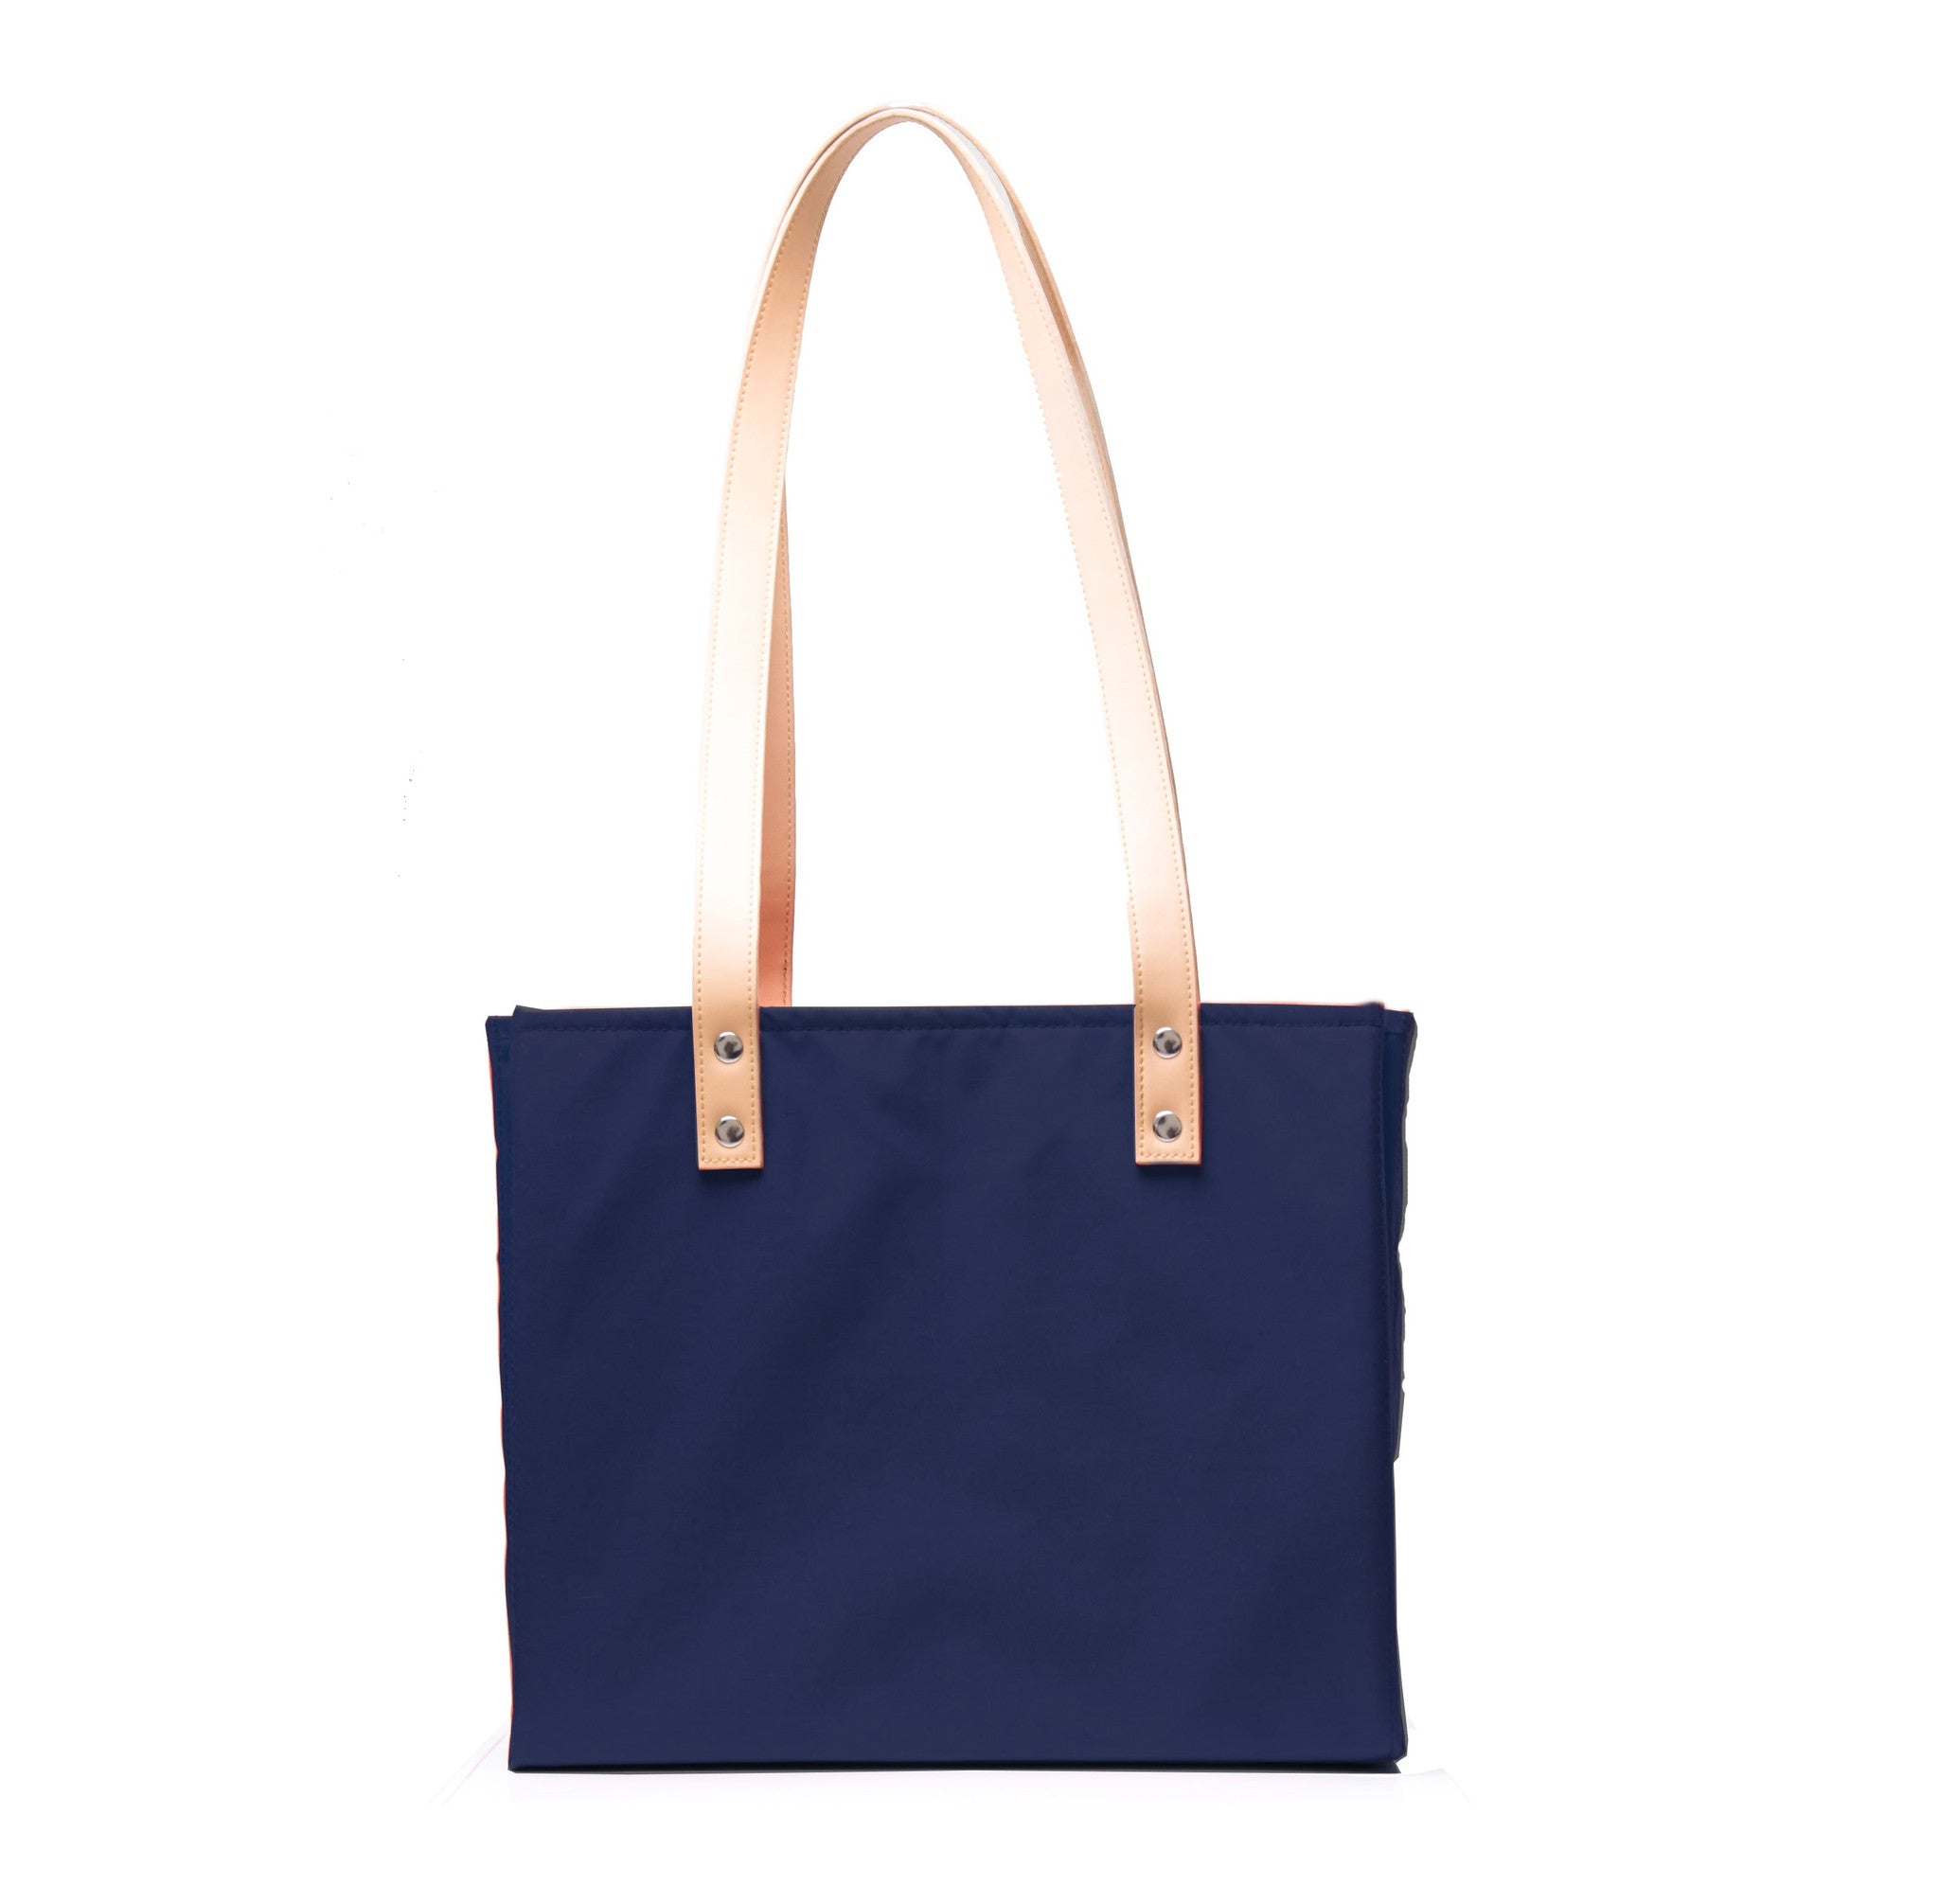 BUTTERFLY TOTE - NAVY